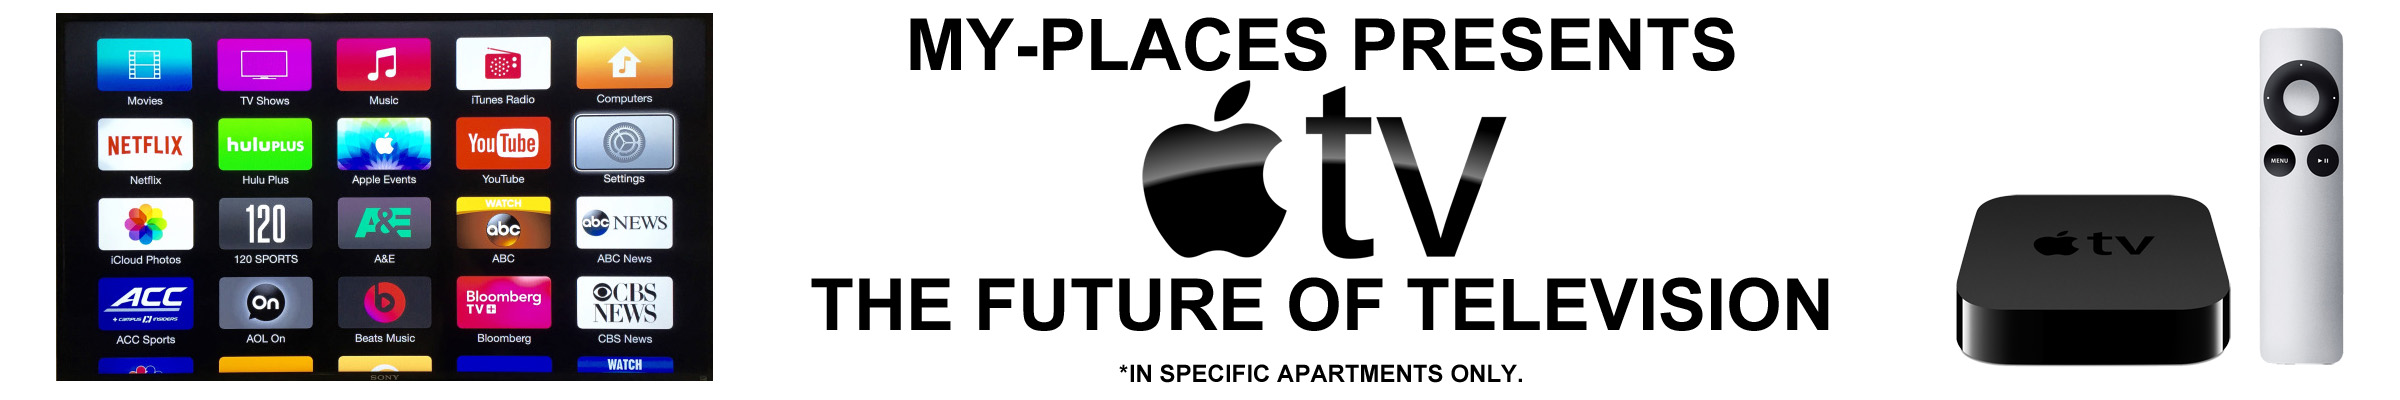 Apple TV in apartment 56